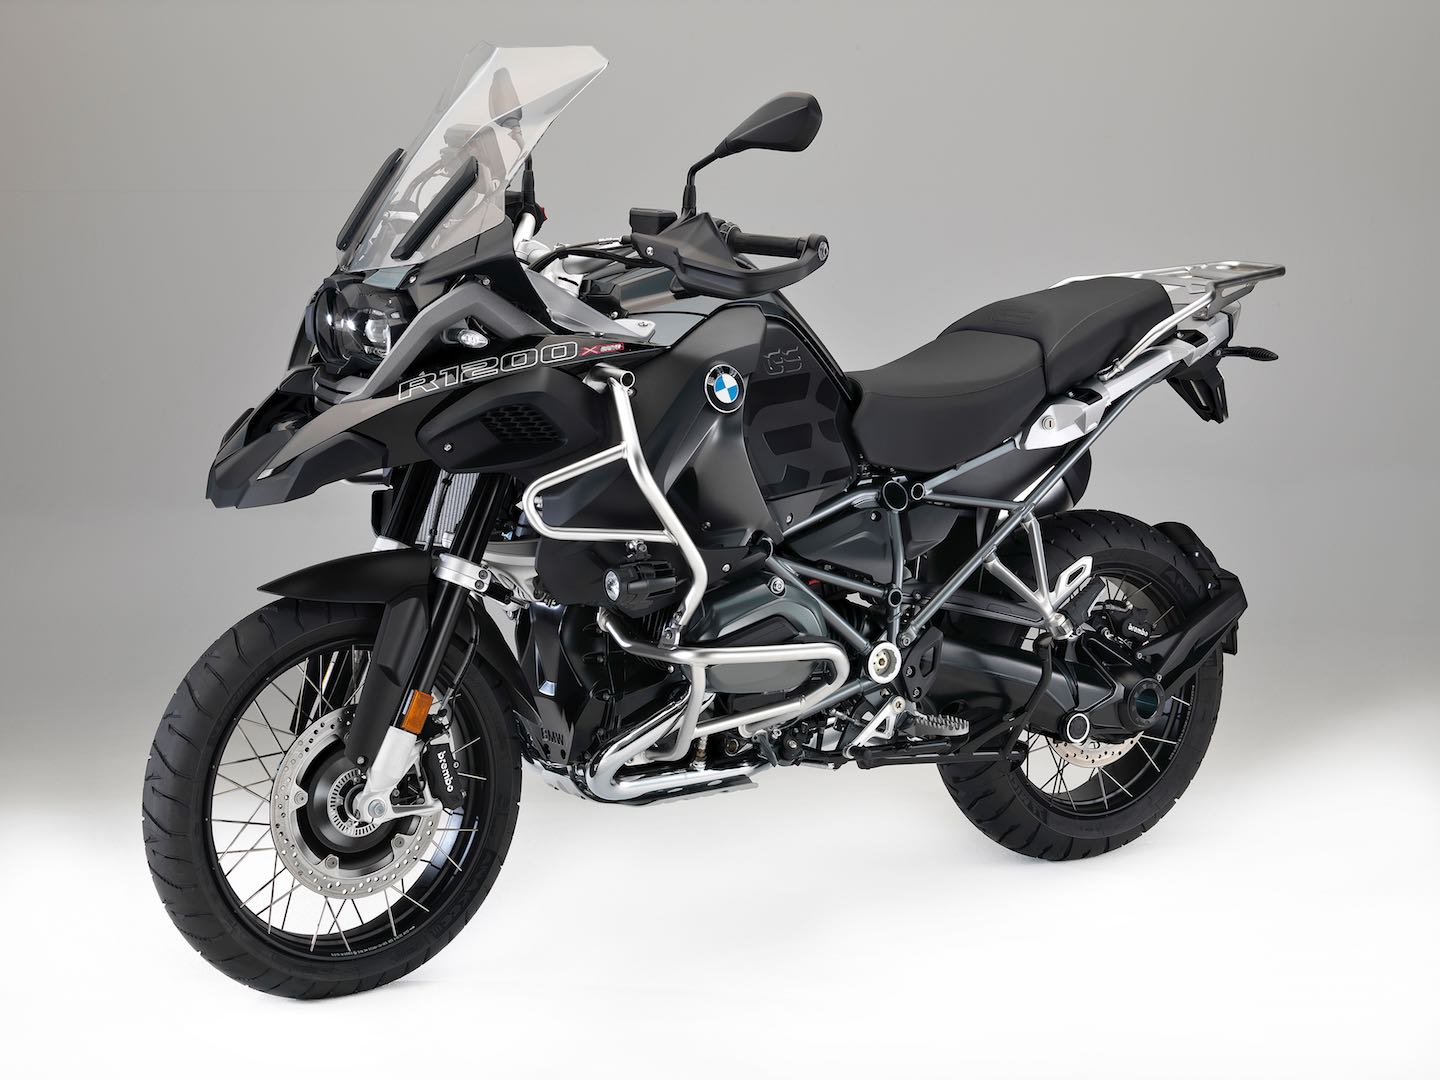 BMW R 1200 GS xDrive Hybrid Unveiled | 170 HP All-Wheel Drive GS